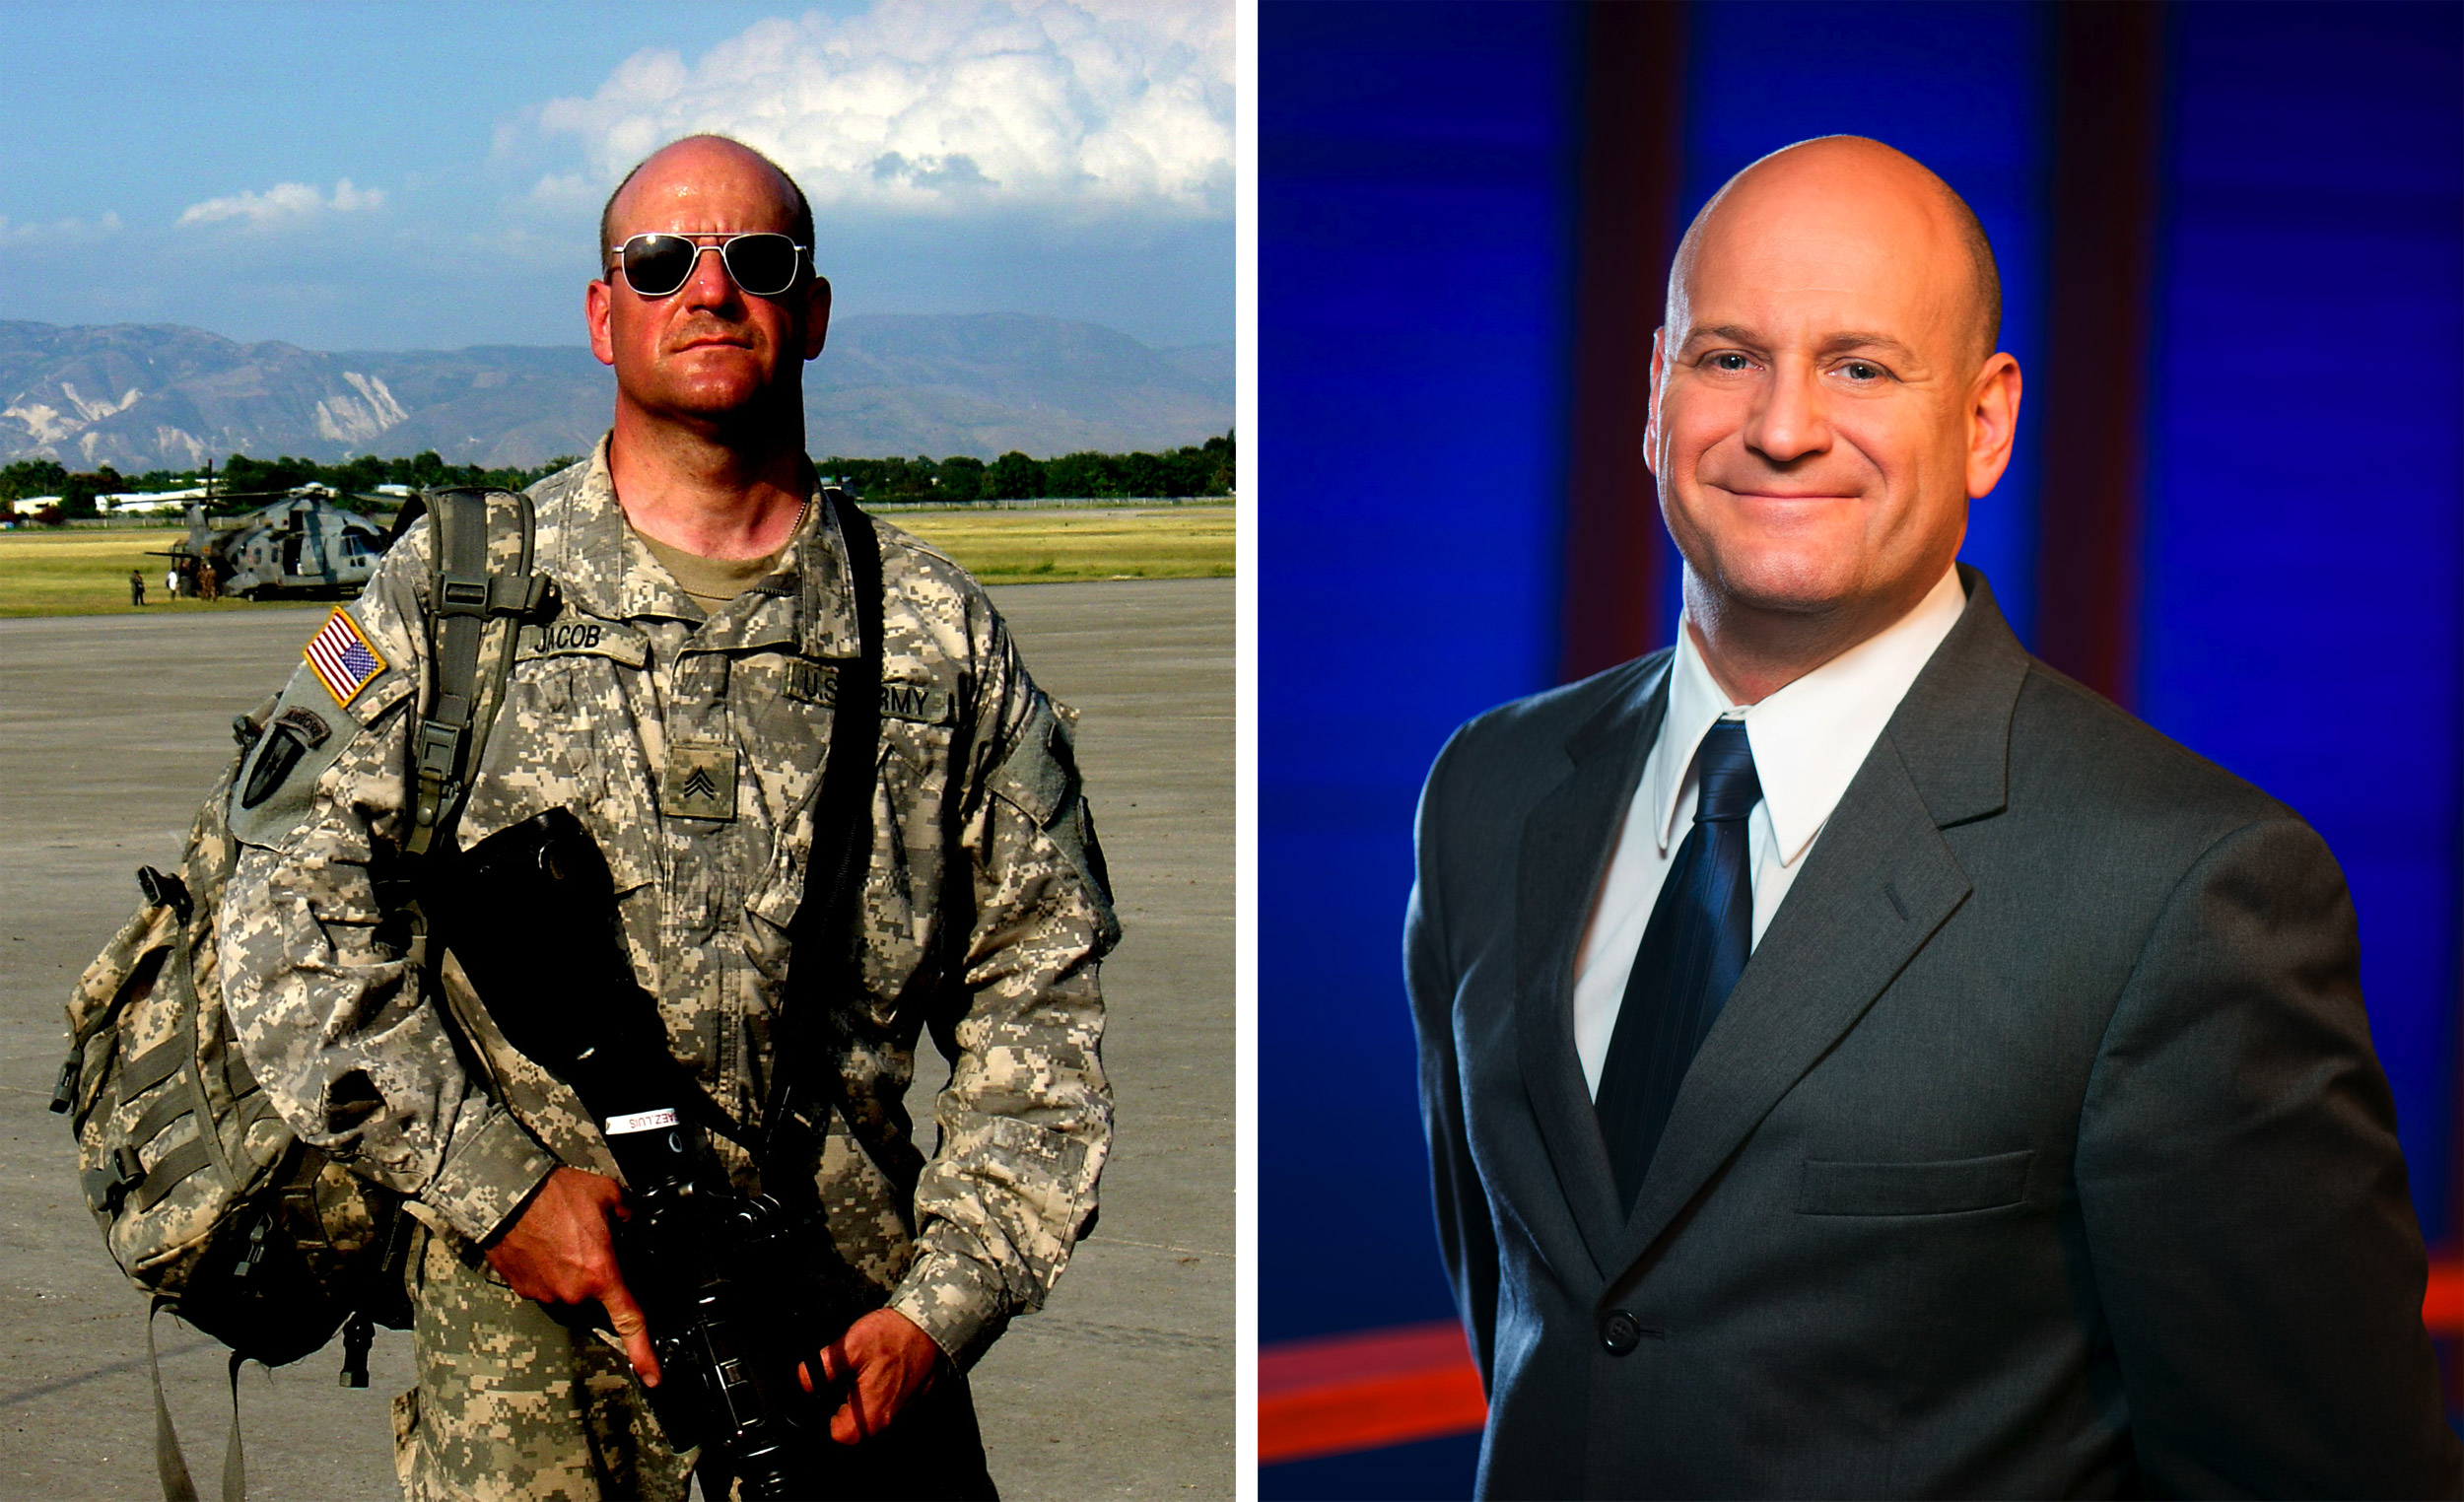 Jerry abroad as a medic, and at right, Jerry back at KY3.